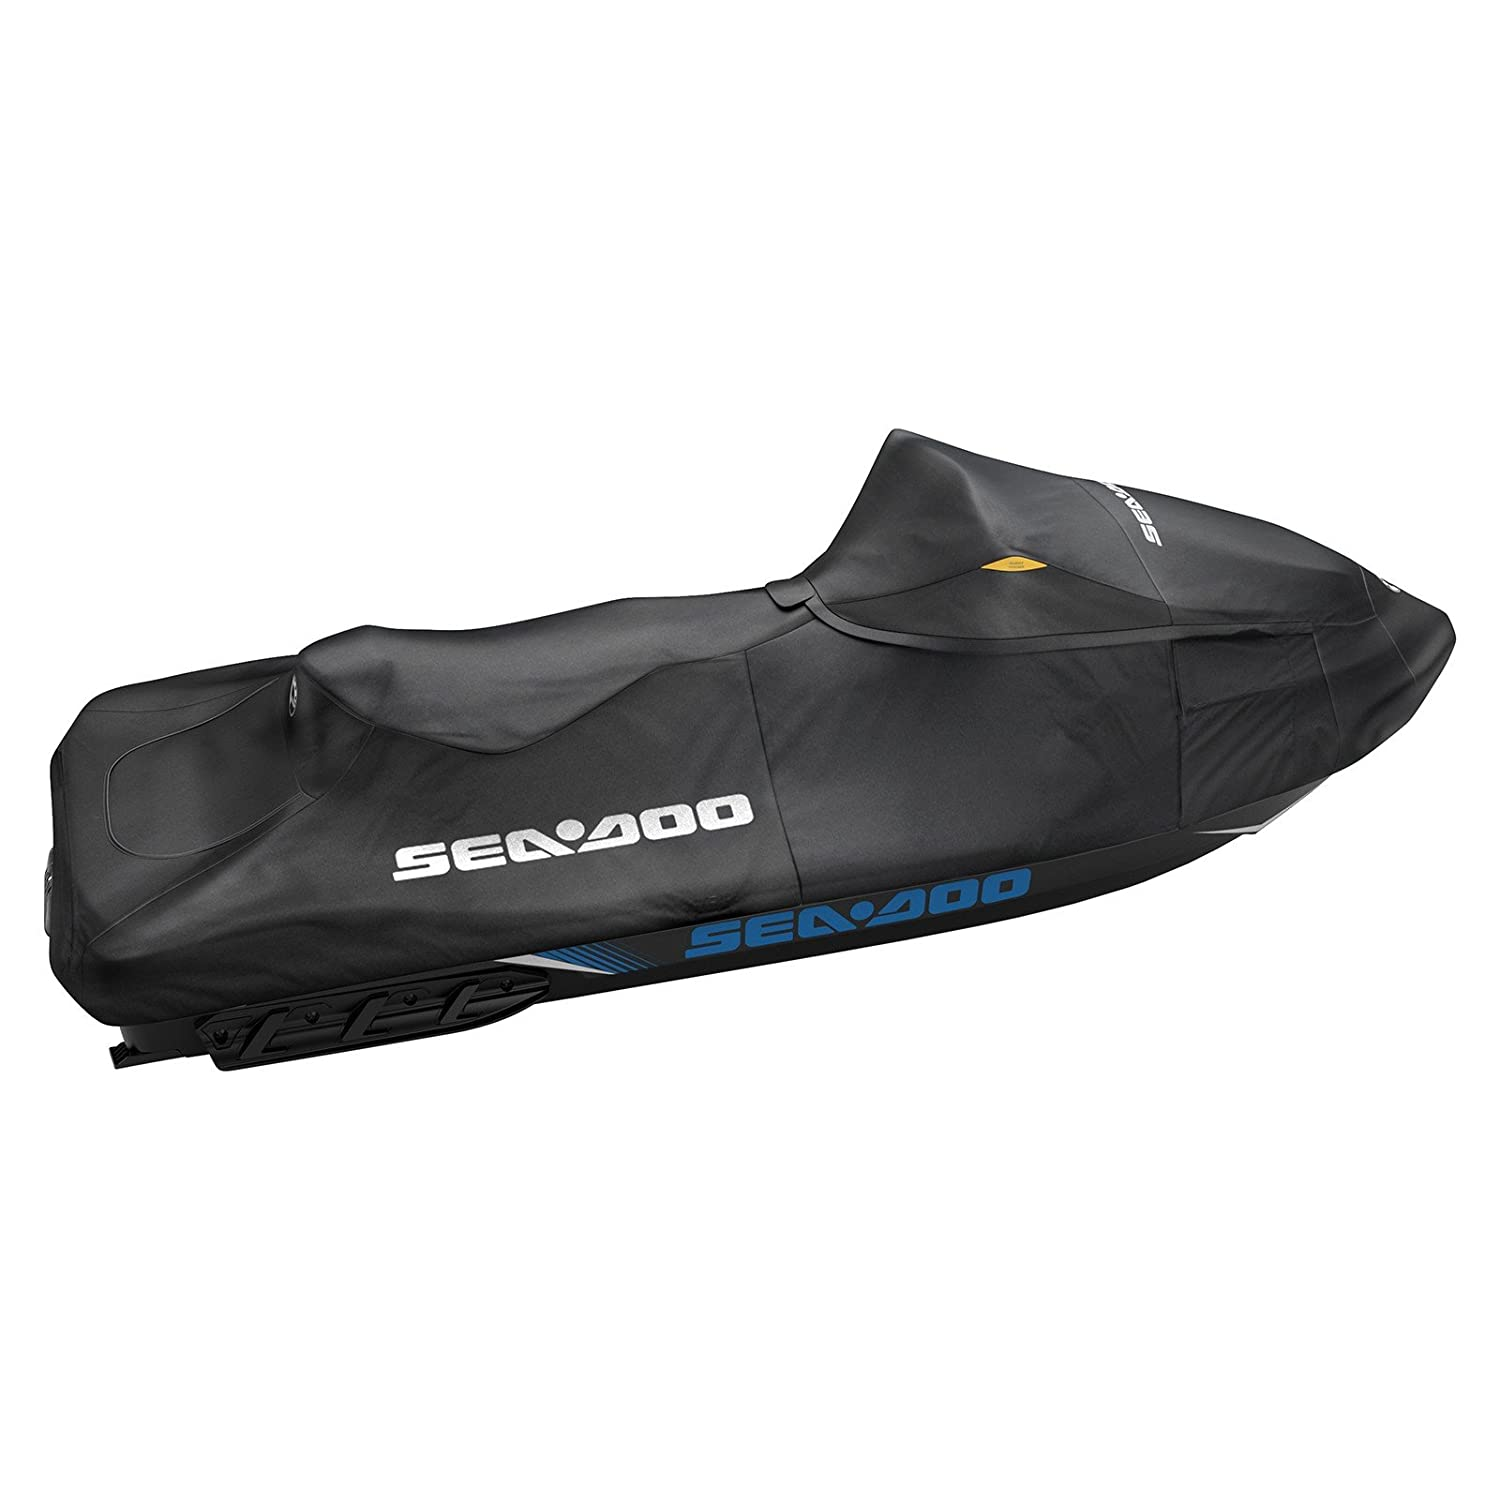 New Genuine BRP Sea Doo Trailering Cover 2018 RXT GTX and Wake Pro 295100697